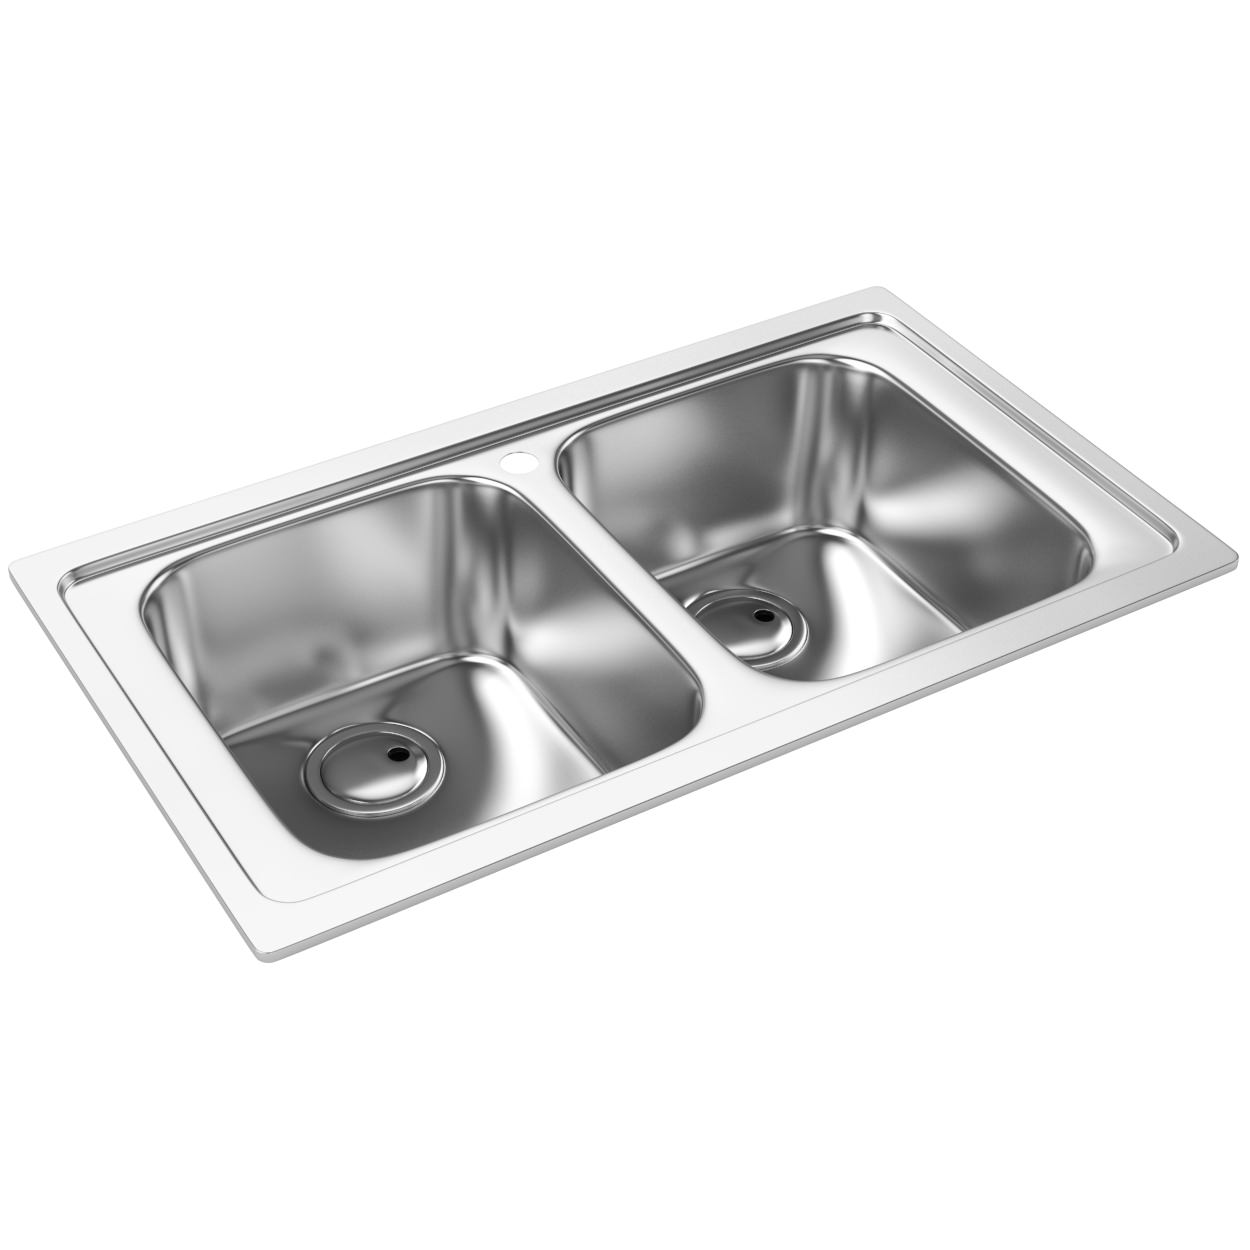 kitchen sink with drainer abode kode 2 0 kitchen sink with no drainer aw5043 6044